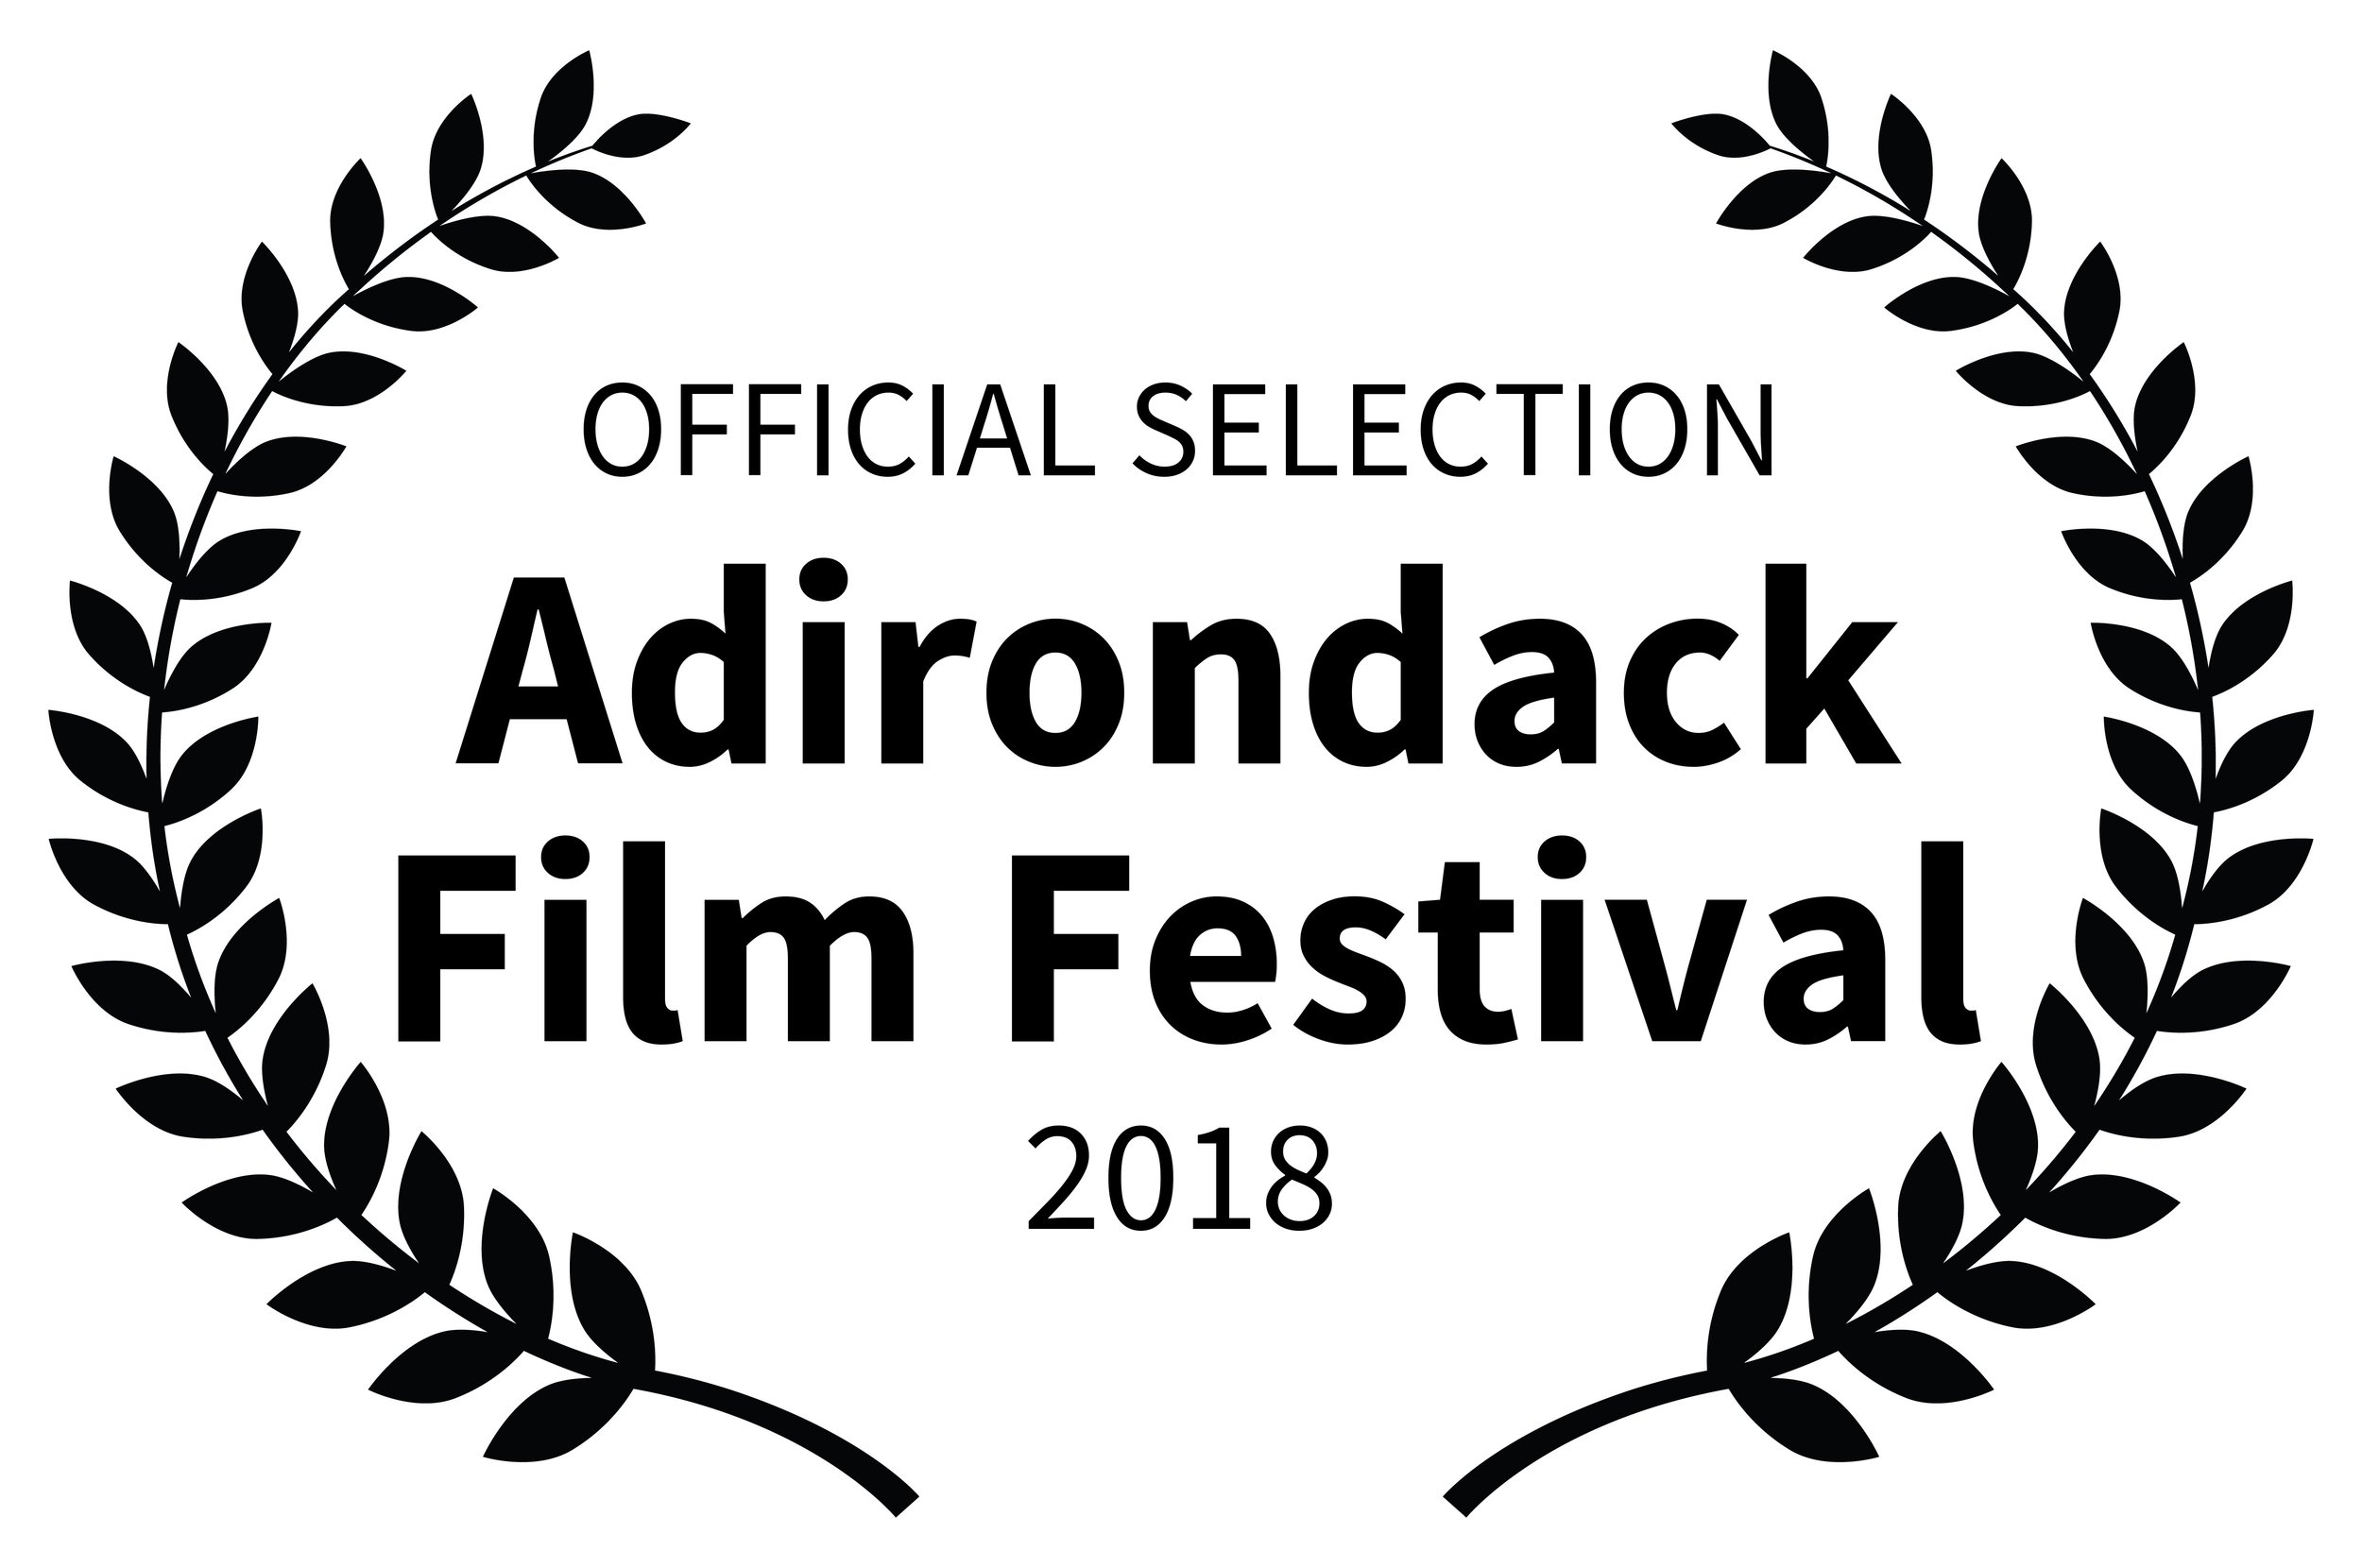 OFFICIALSELECTION-AdirondackFilmFestival-2018.jpg